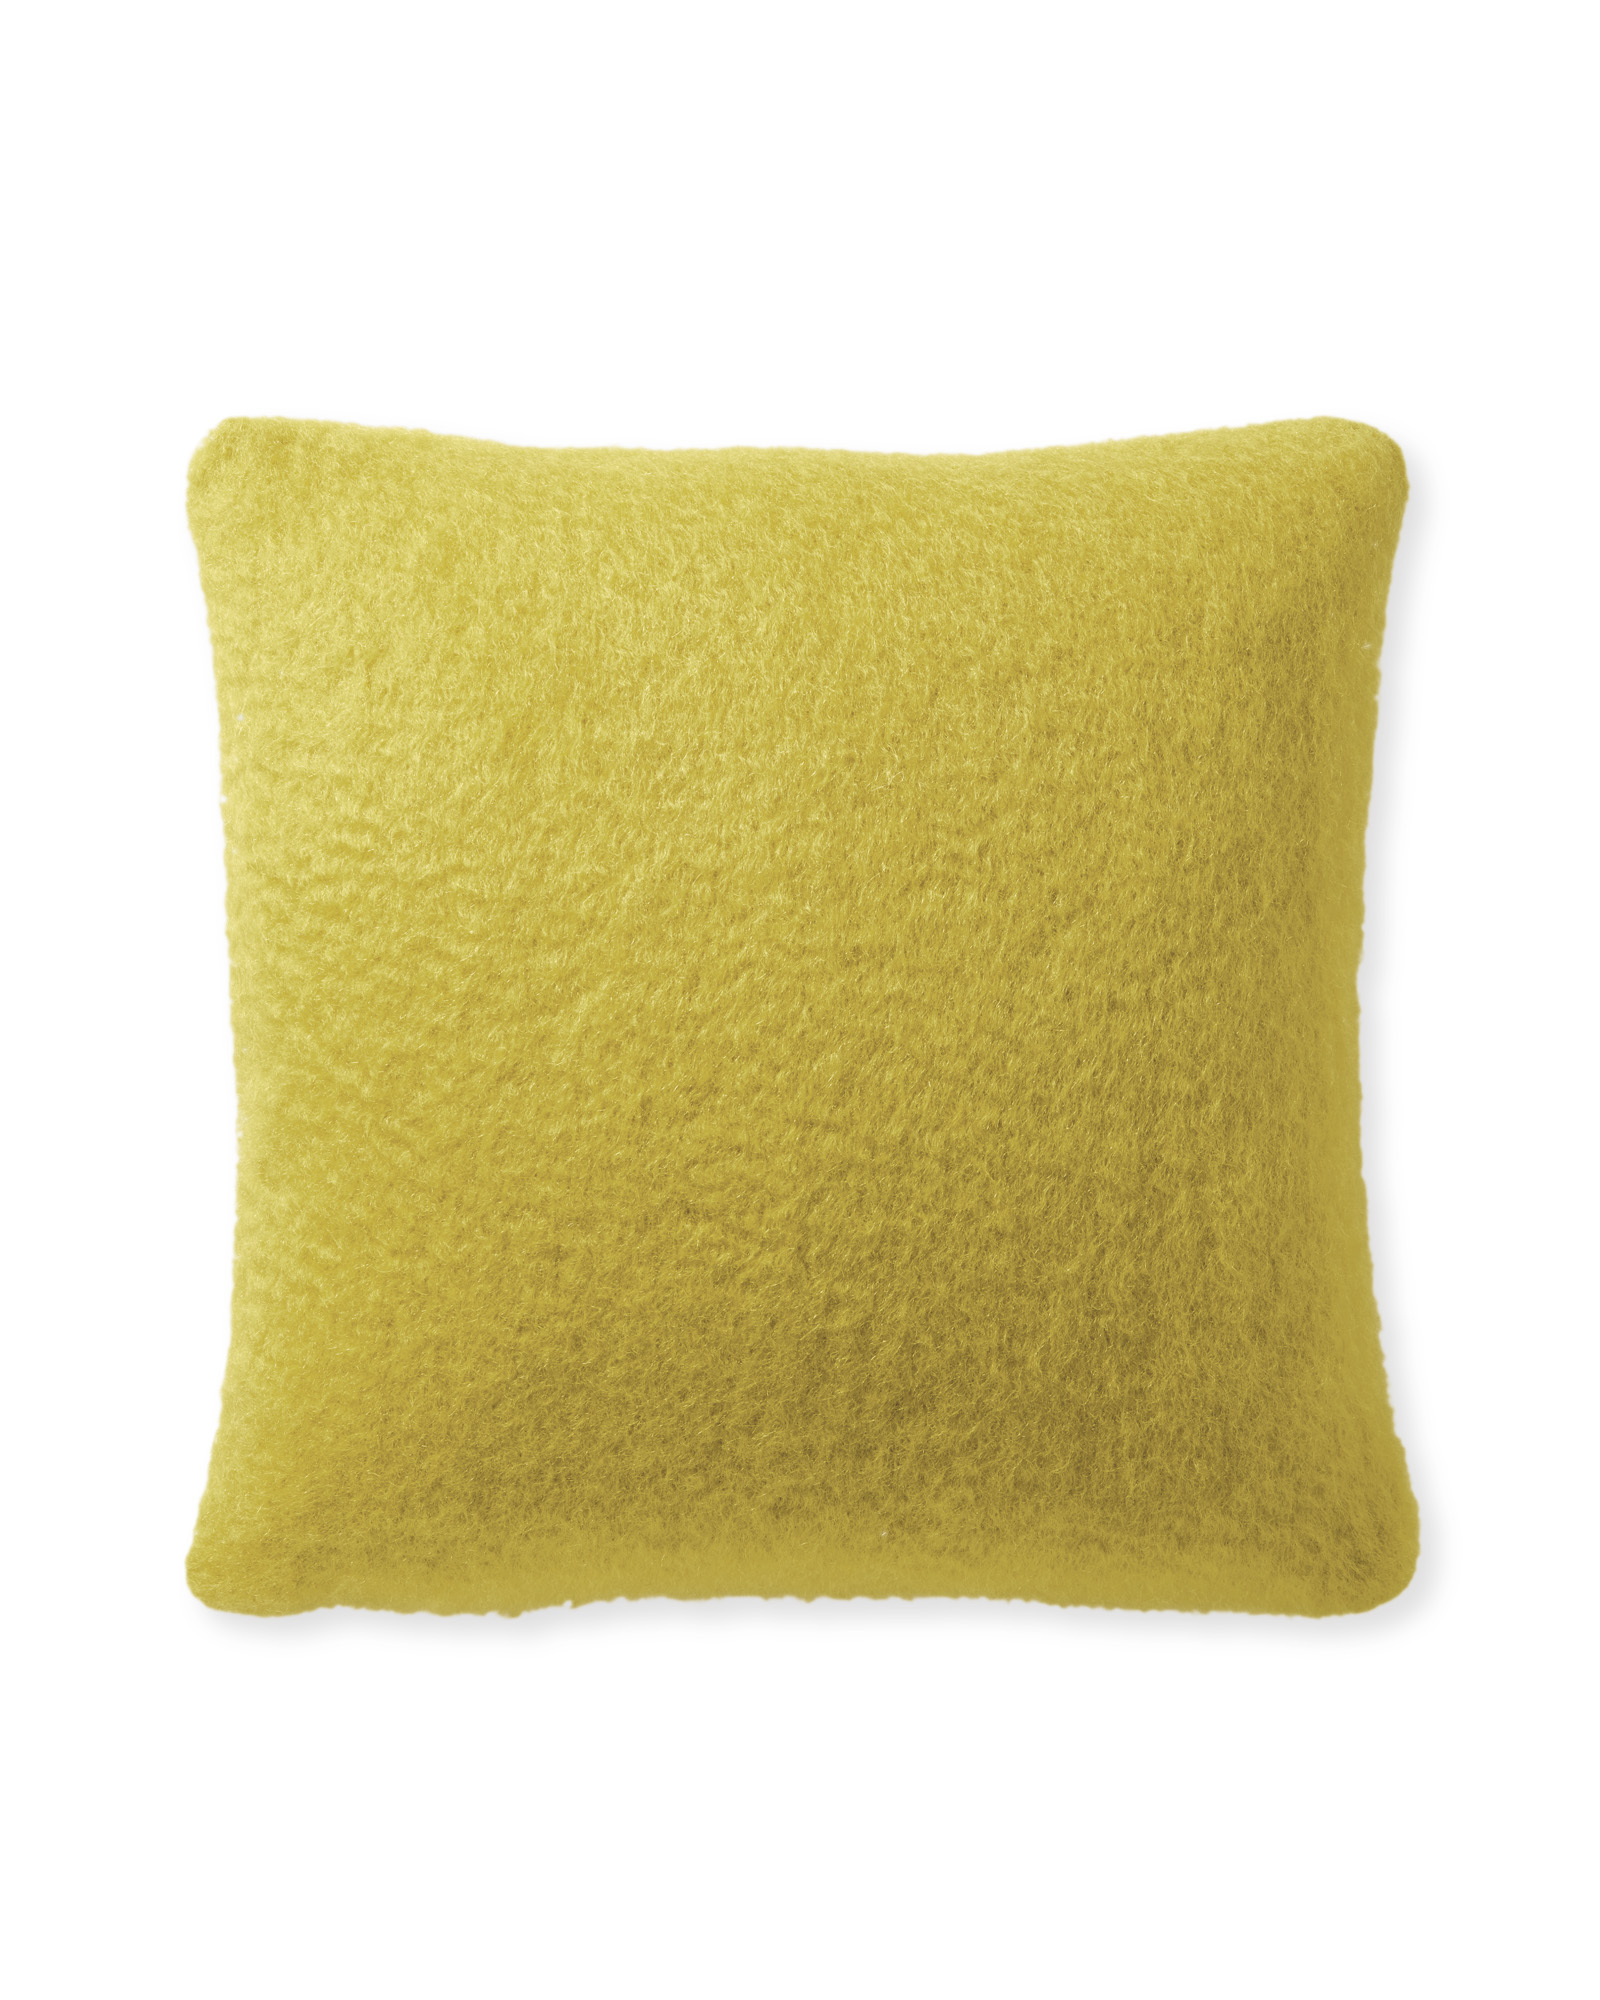 Albion Pillow Cover, Yarrow